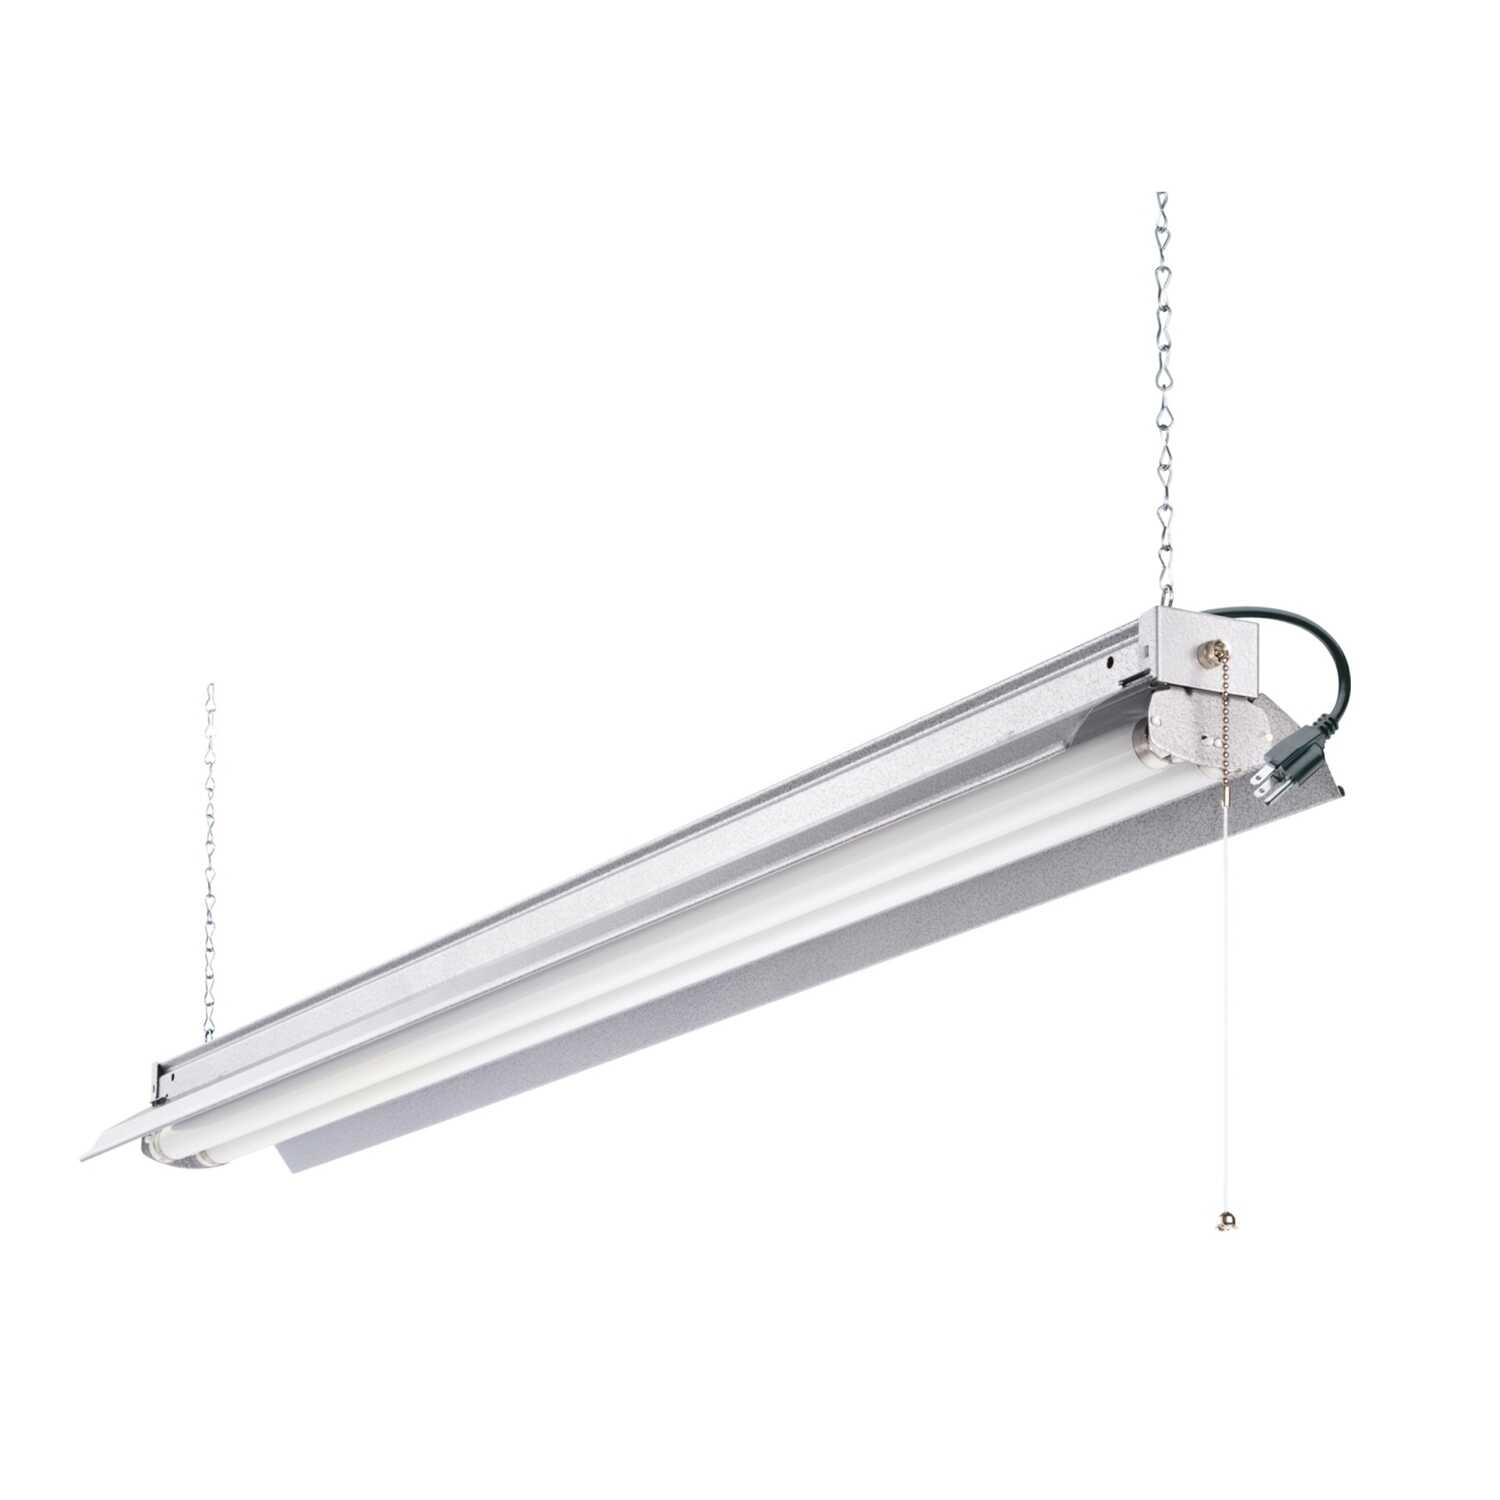 Lithonia lighting 48 in 64 watts fluorescent shop light ace hardware